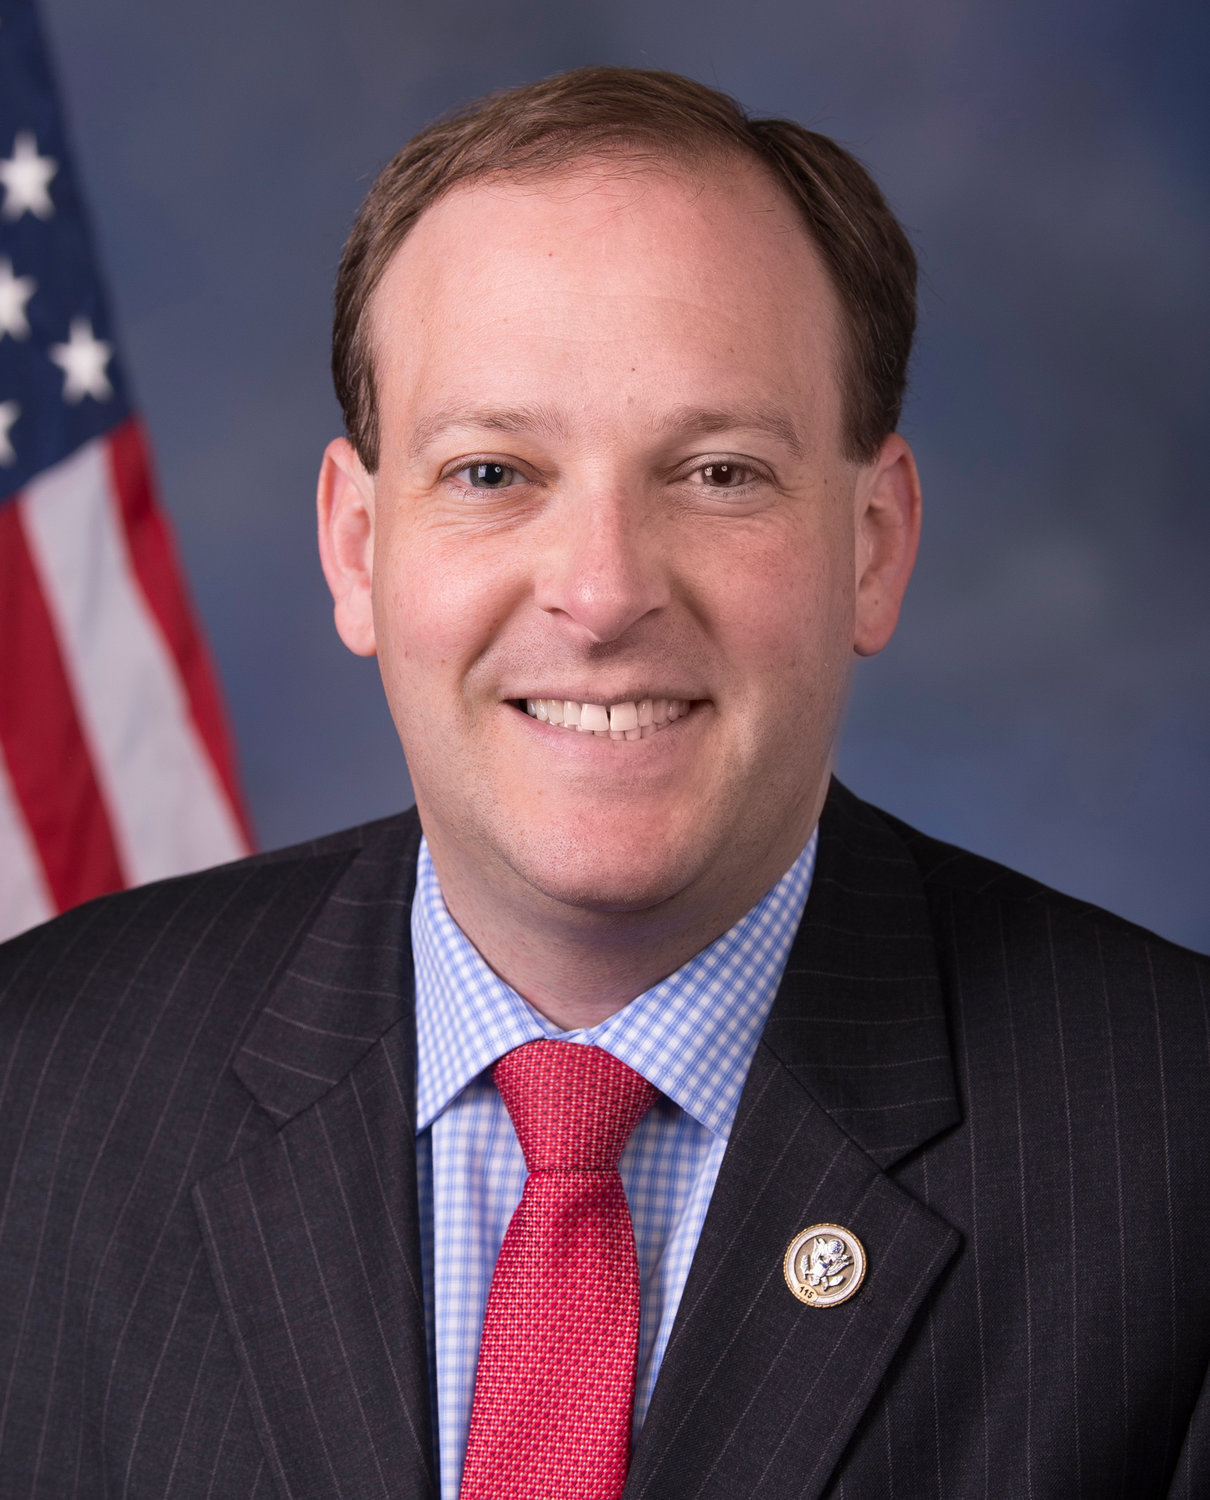 Congressman Lee Zeldin (R, NY-1) announced he will run for Governor of New York in 2022.